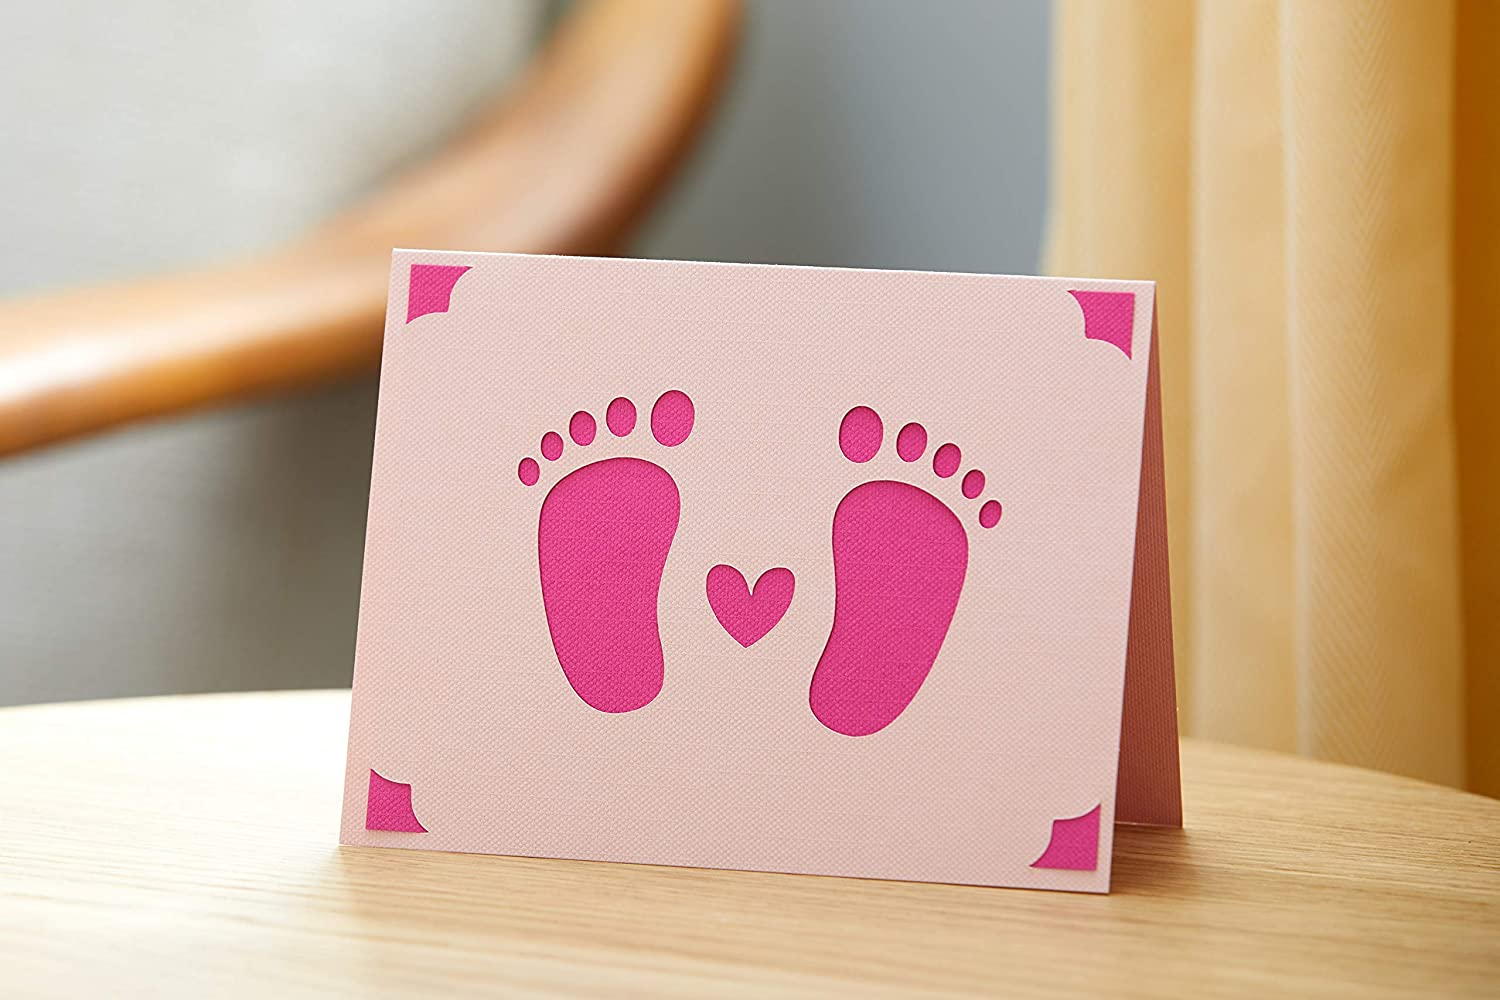 and Wedding Cricut Joy Insert Cards Gray//Silver Brushed 10 ct Birthday DIY greeting card for Baby Shower